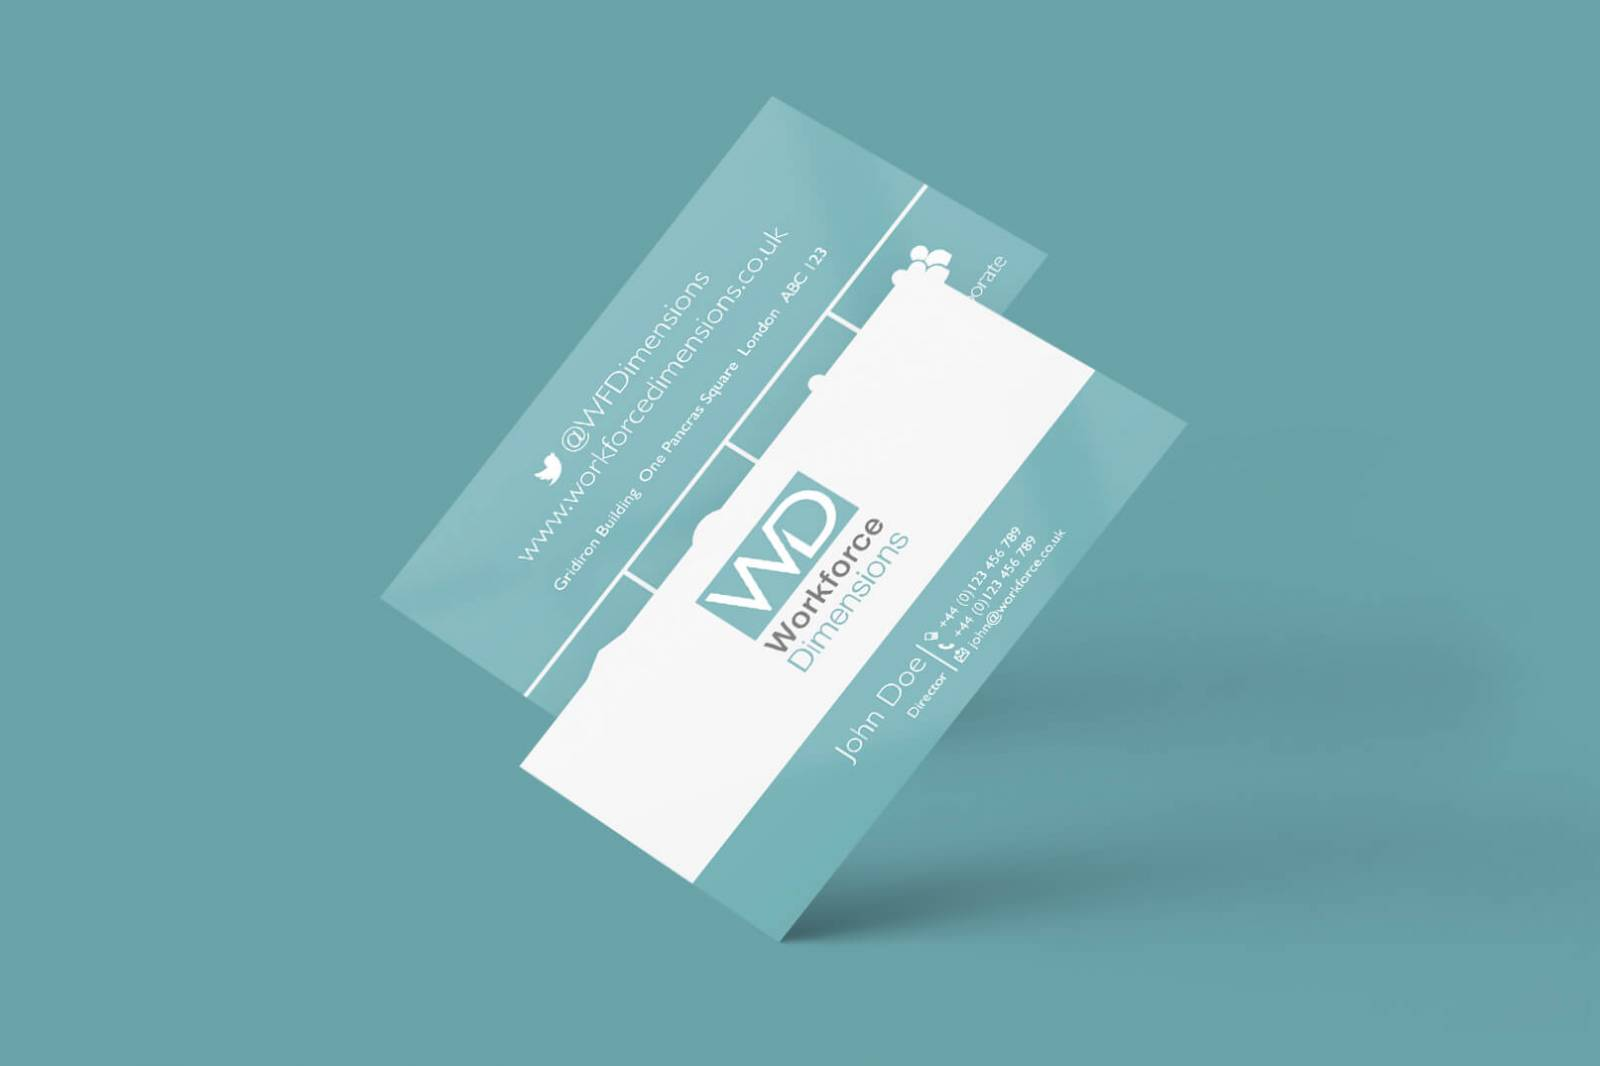 Workforce-business-card-design-agency-graphic-design-canterbury-01.png